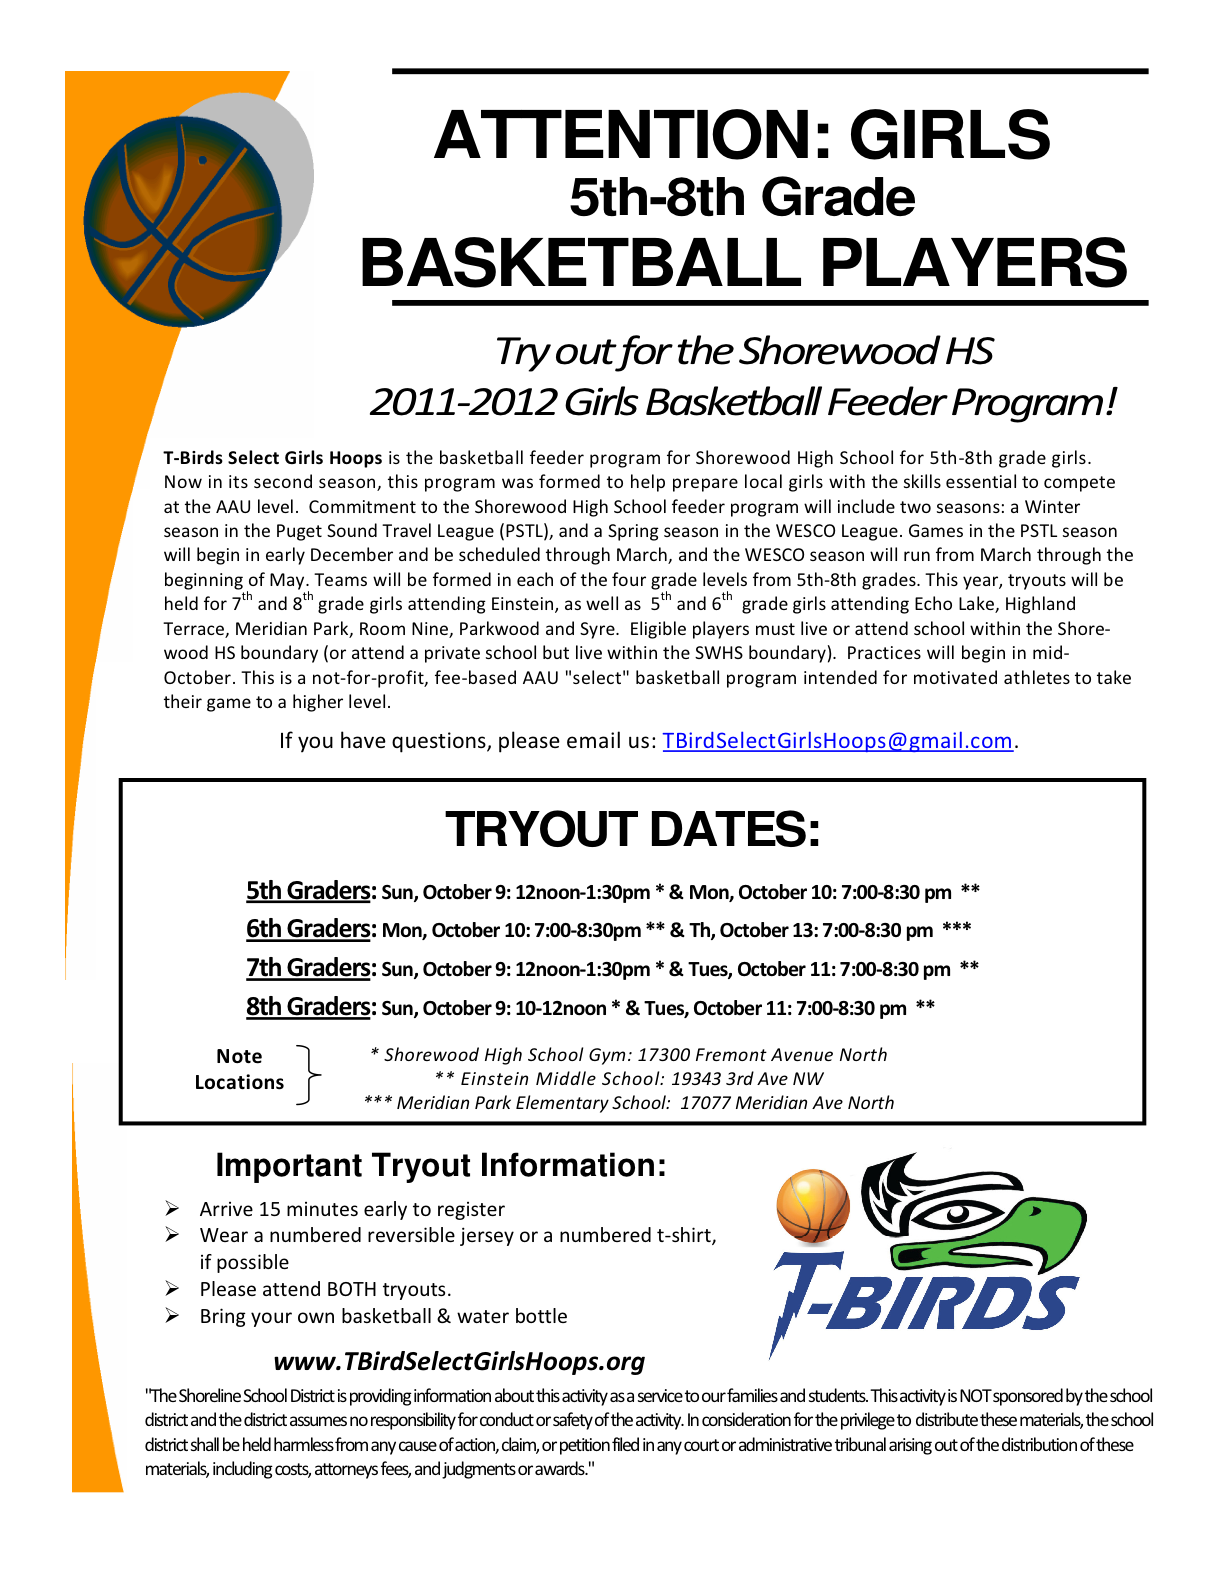 basketball tournament program template - shoreline area news try outs for girls 39 basketball sw